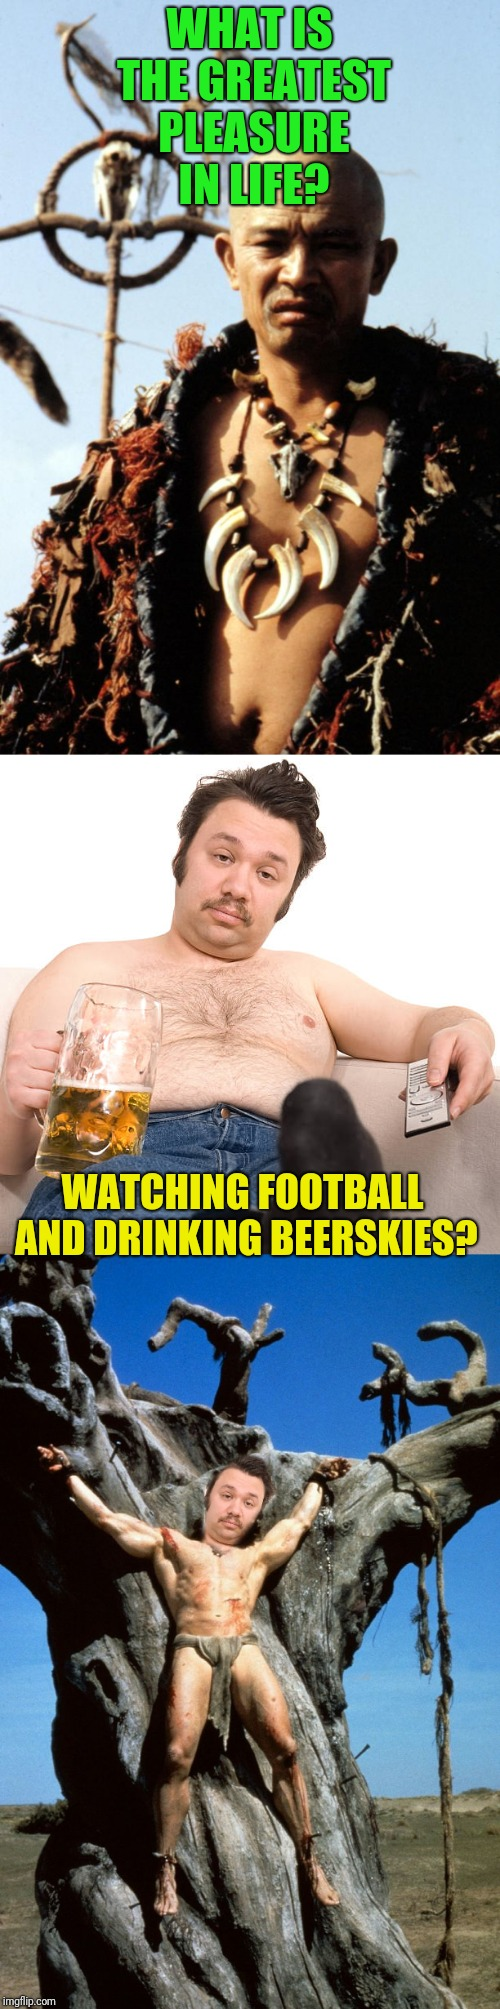 Tie him to the Tree of Woe, seems to be my thing this week | WHAT IS THE GREATEST PLEASURE IN LIFE? WATCHING FOOTBALL AND DRINKING BEERSKIES? | image tagged in conan,tree of woe | made w/ Imgflip meme maker